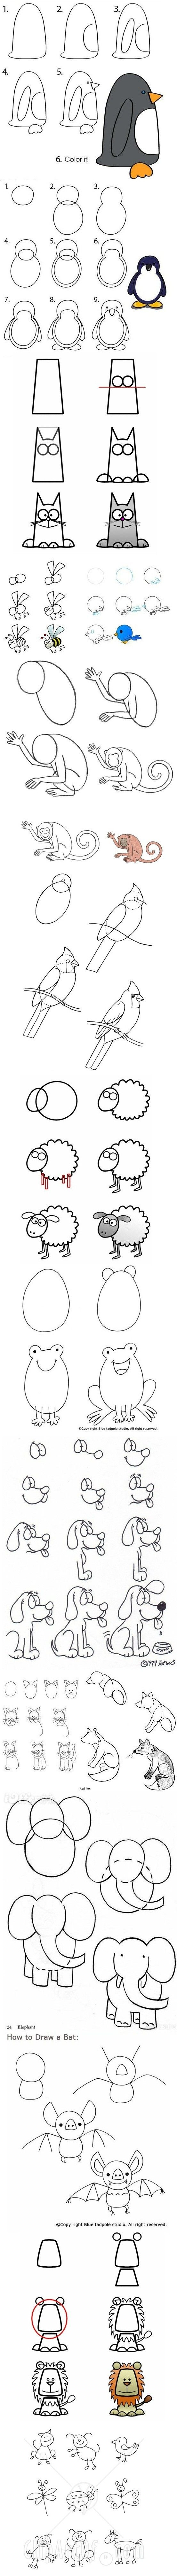 How-To: Draw Cute Animals Fun for kids!!Drawing Tutorials, Cute Animal, Draw Animals, To Drawing, Drawing Animals, For Kids, Animal Drawing, How To Draw, Easy Drawing